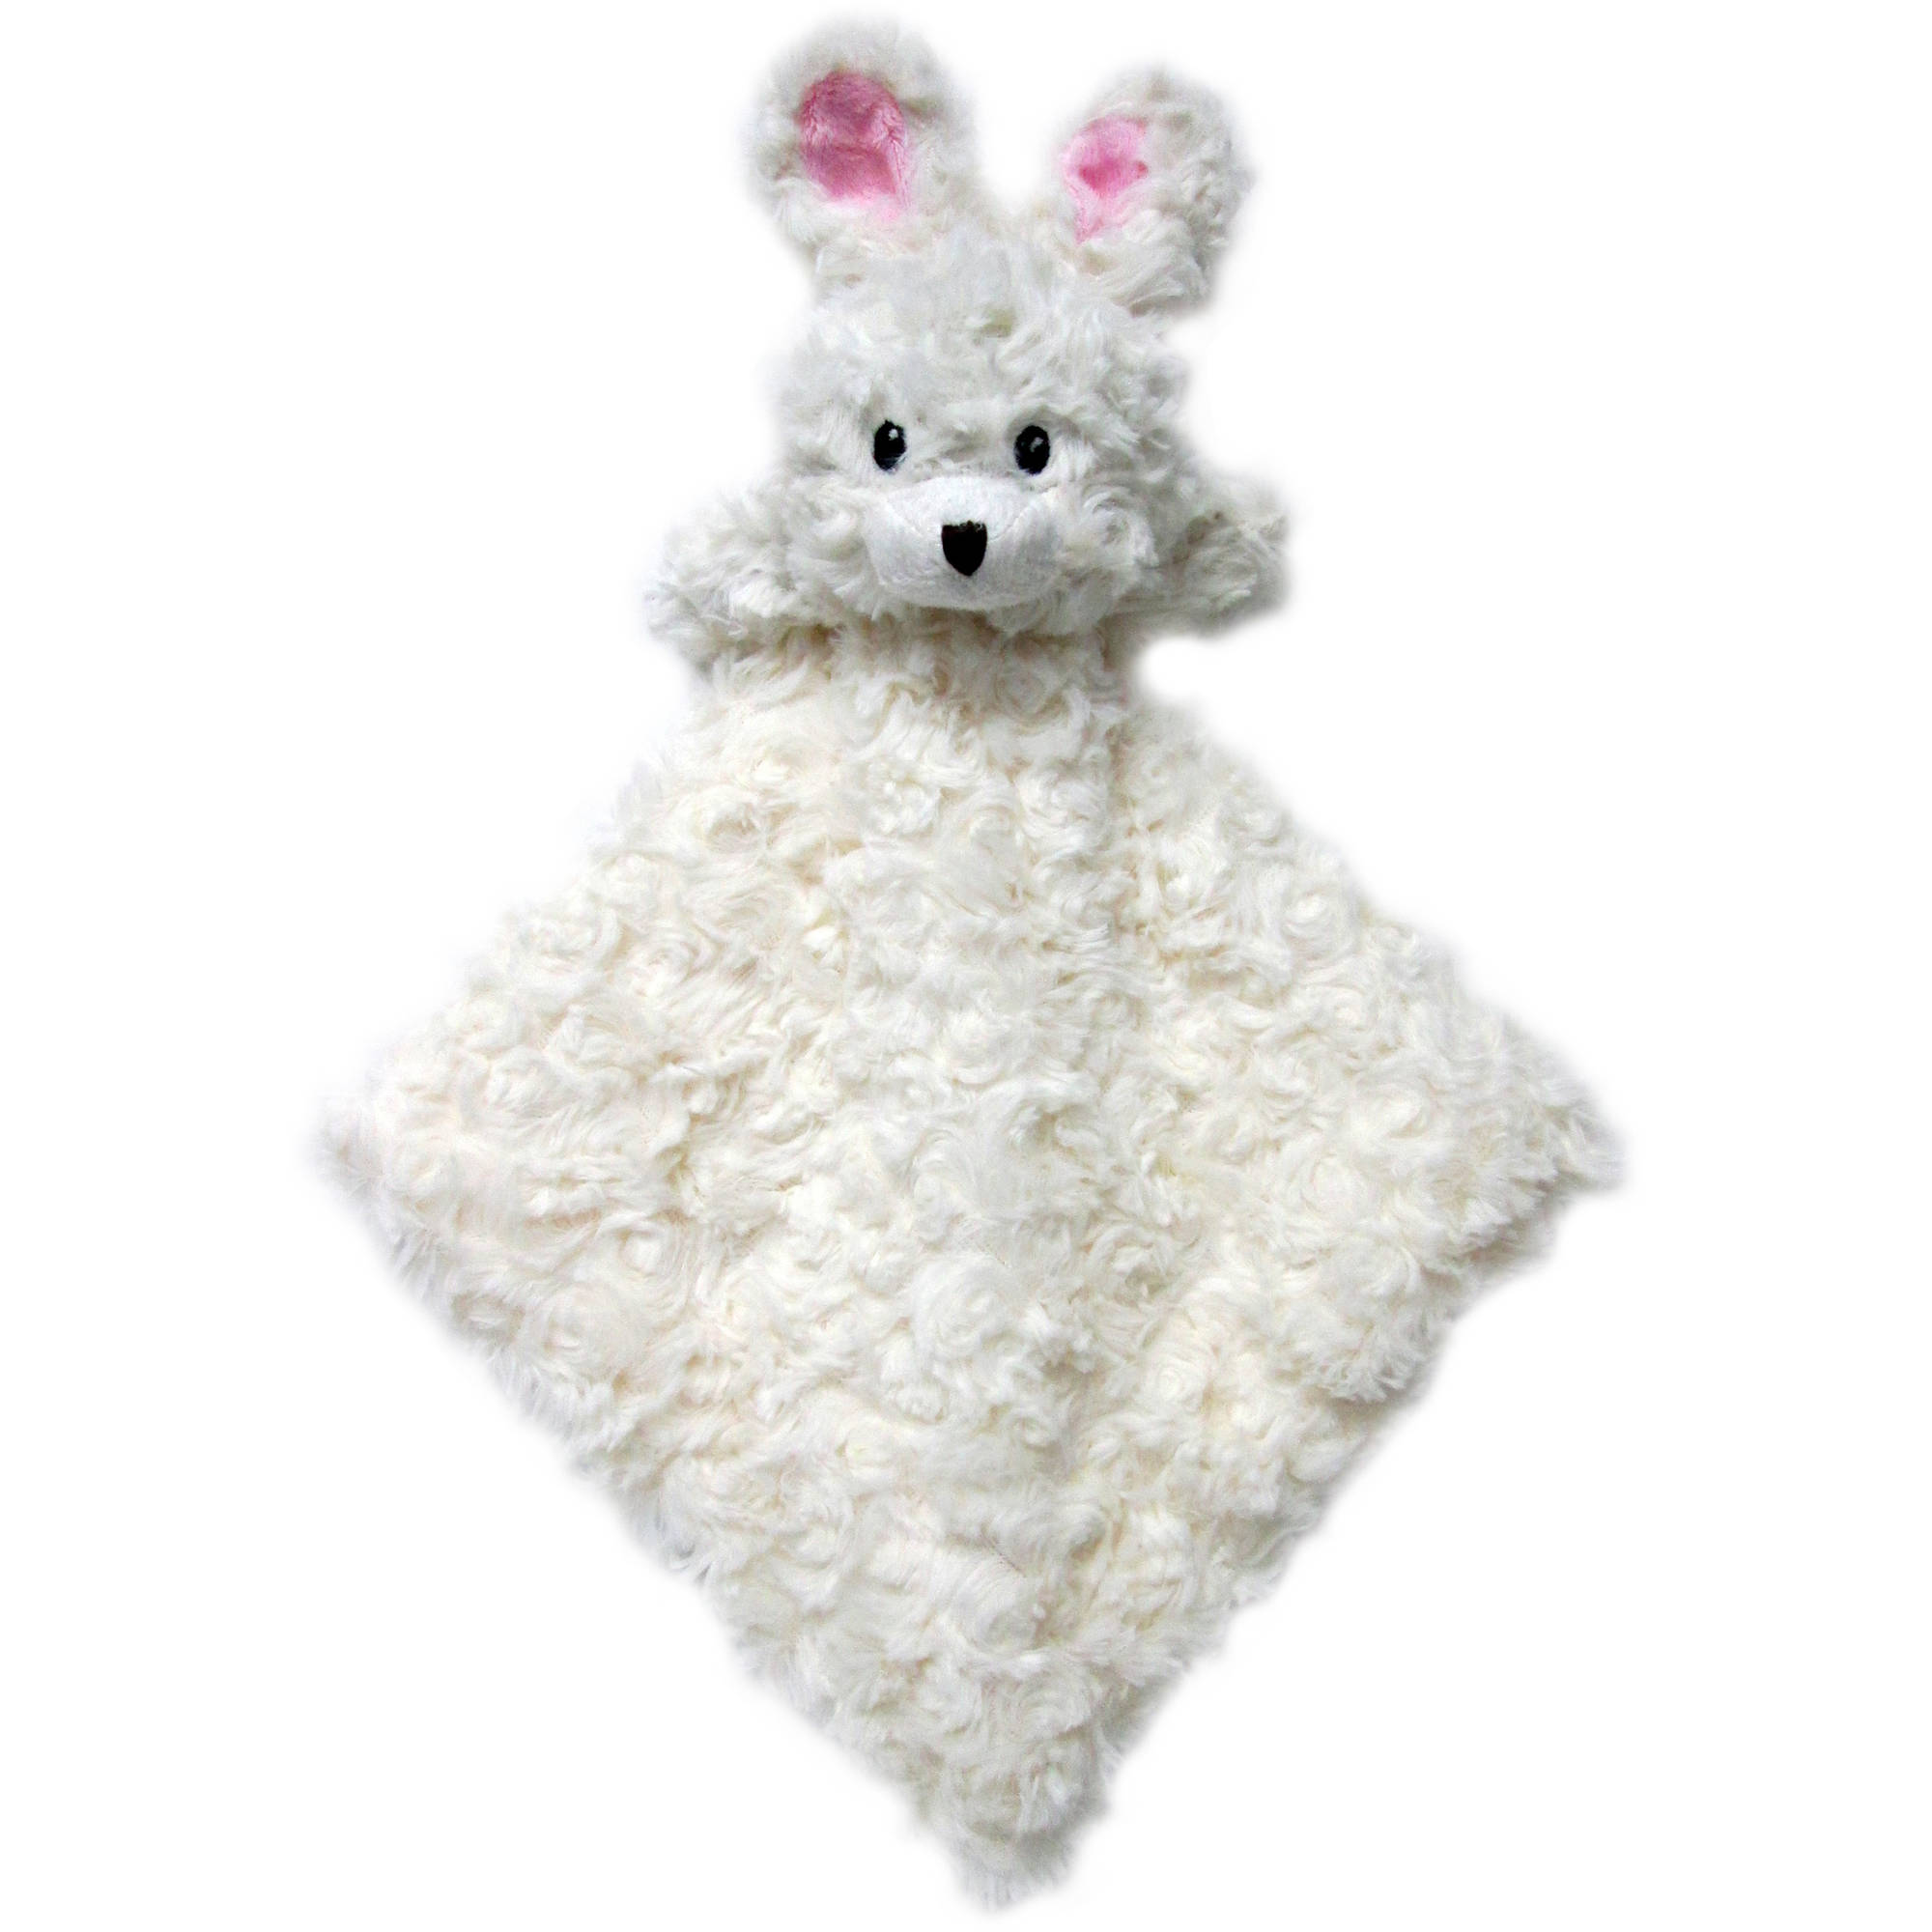 Sumersault Snuggle Buddy, Ivory Bunny by Crown Crafts Infant Products Inc